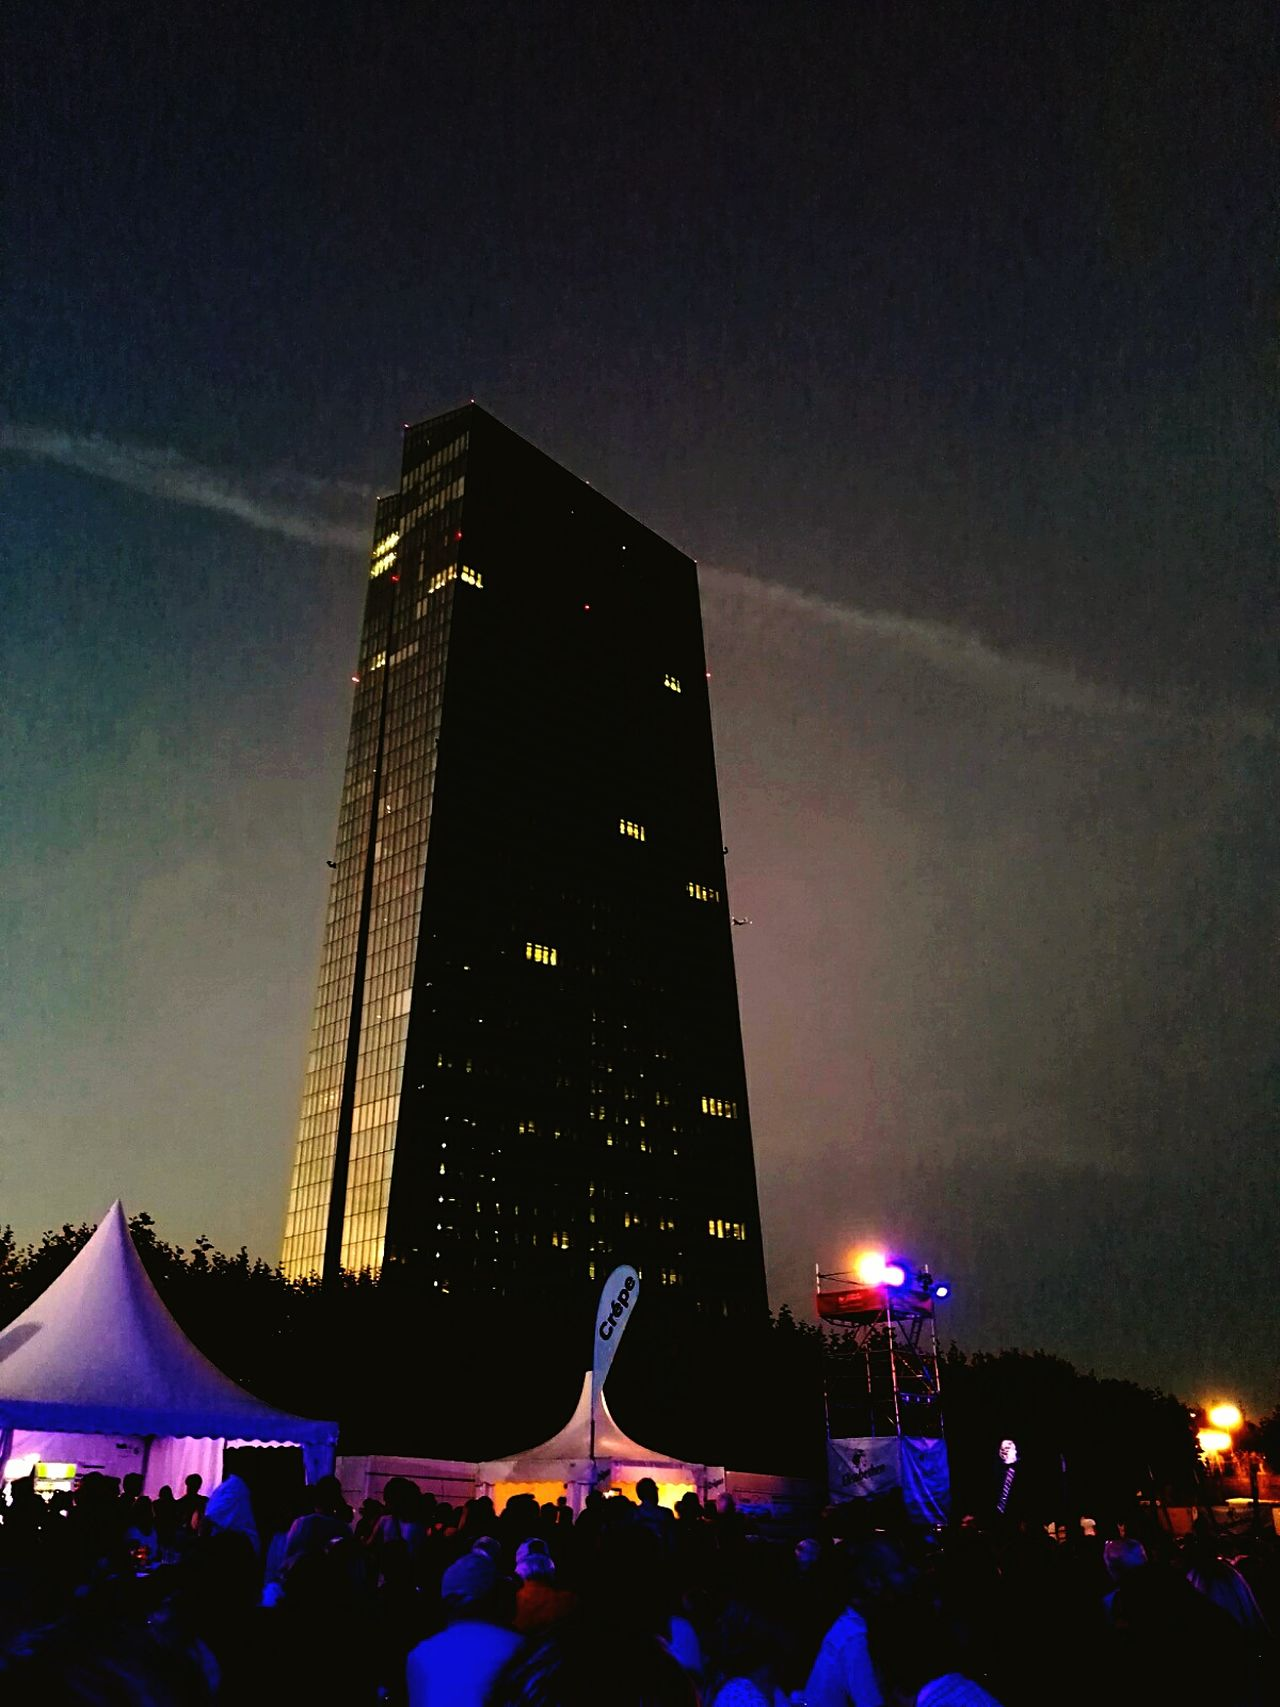 Festival Season Open Air hr 3 sinfonieorchester European Central Bank Weseler Werft Building And Sky Archtecture